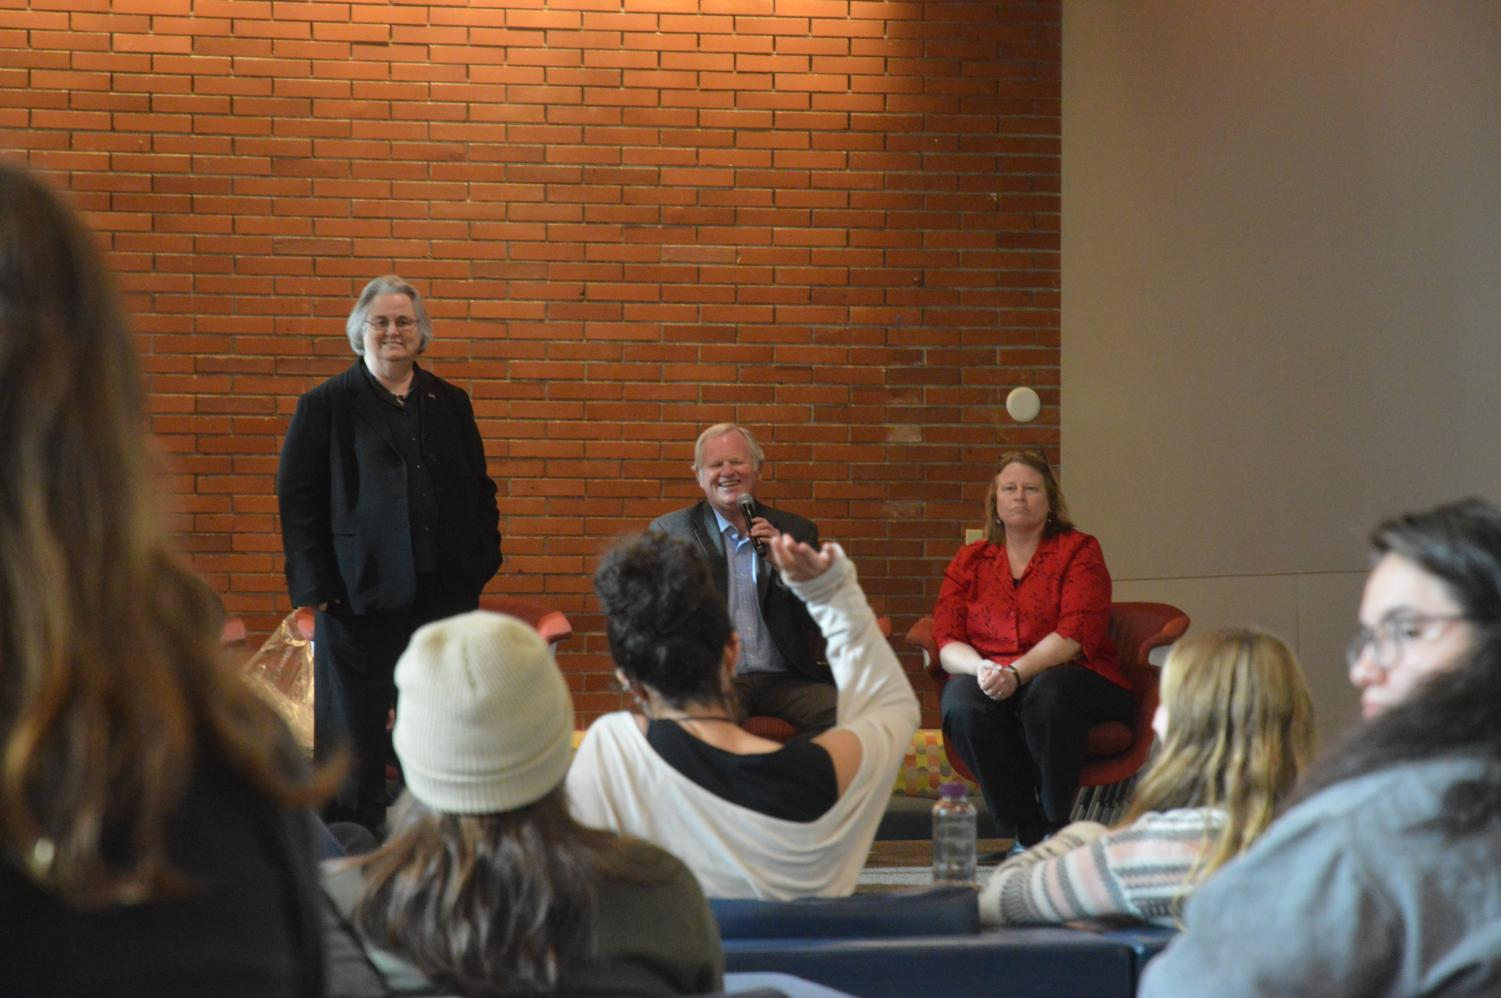 Pacific University President Lesley Hallick, left, held the institution's first open forum Nov. 7 to allow students' voices to be heard on a variety of university topics.